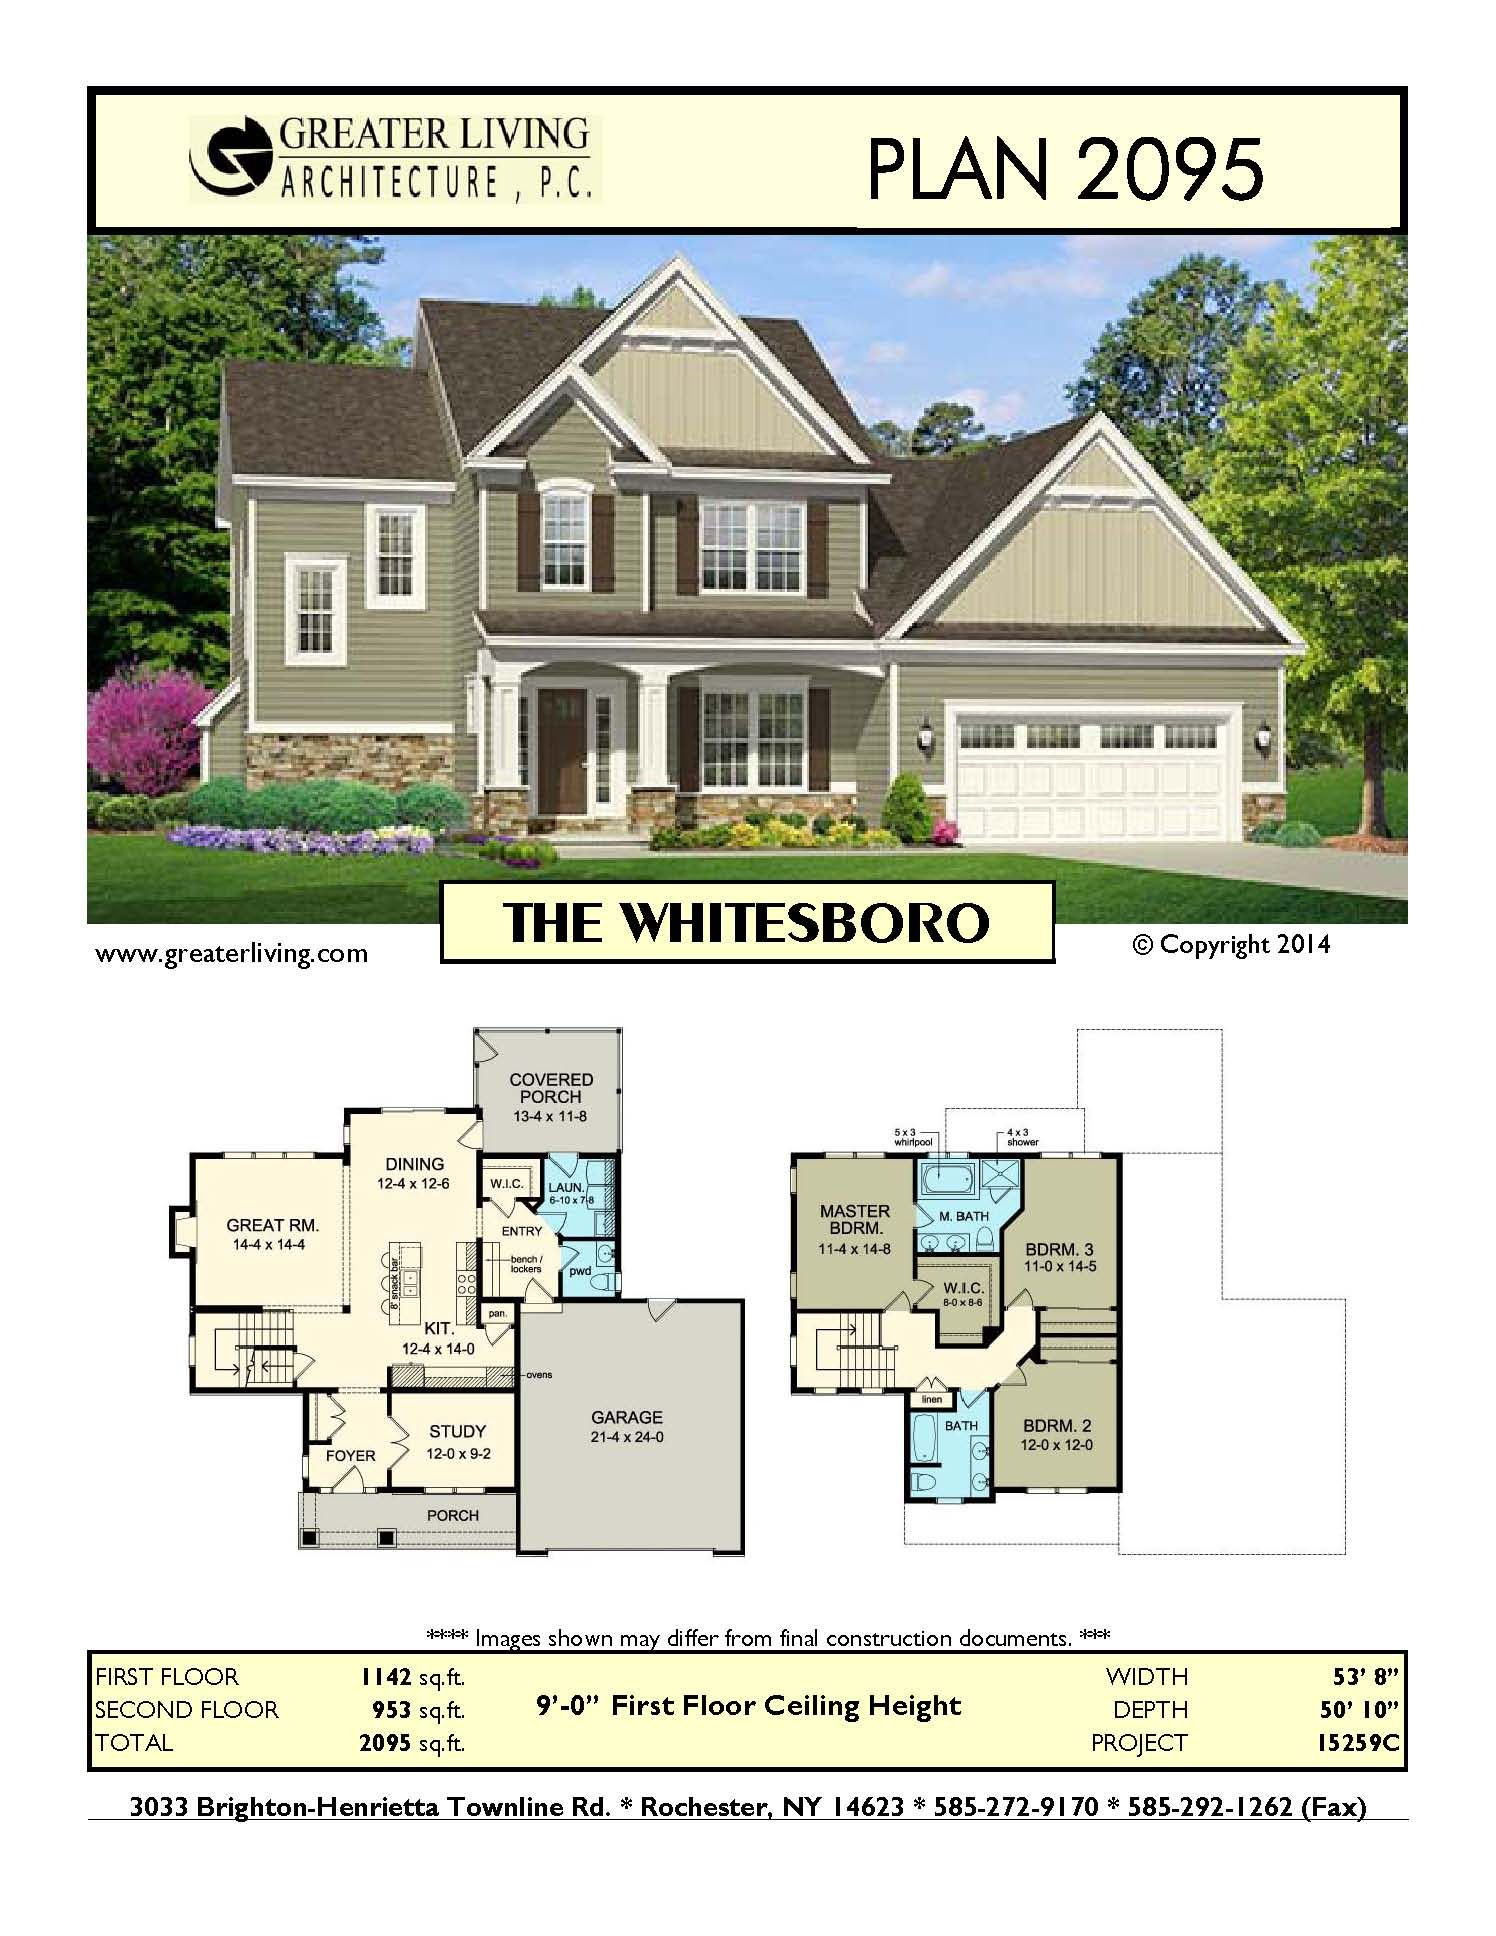 Plan 2095: THE WHITESBORO - Two Story House Plan - Greater Living ...